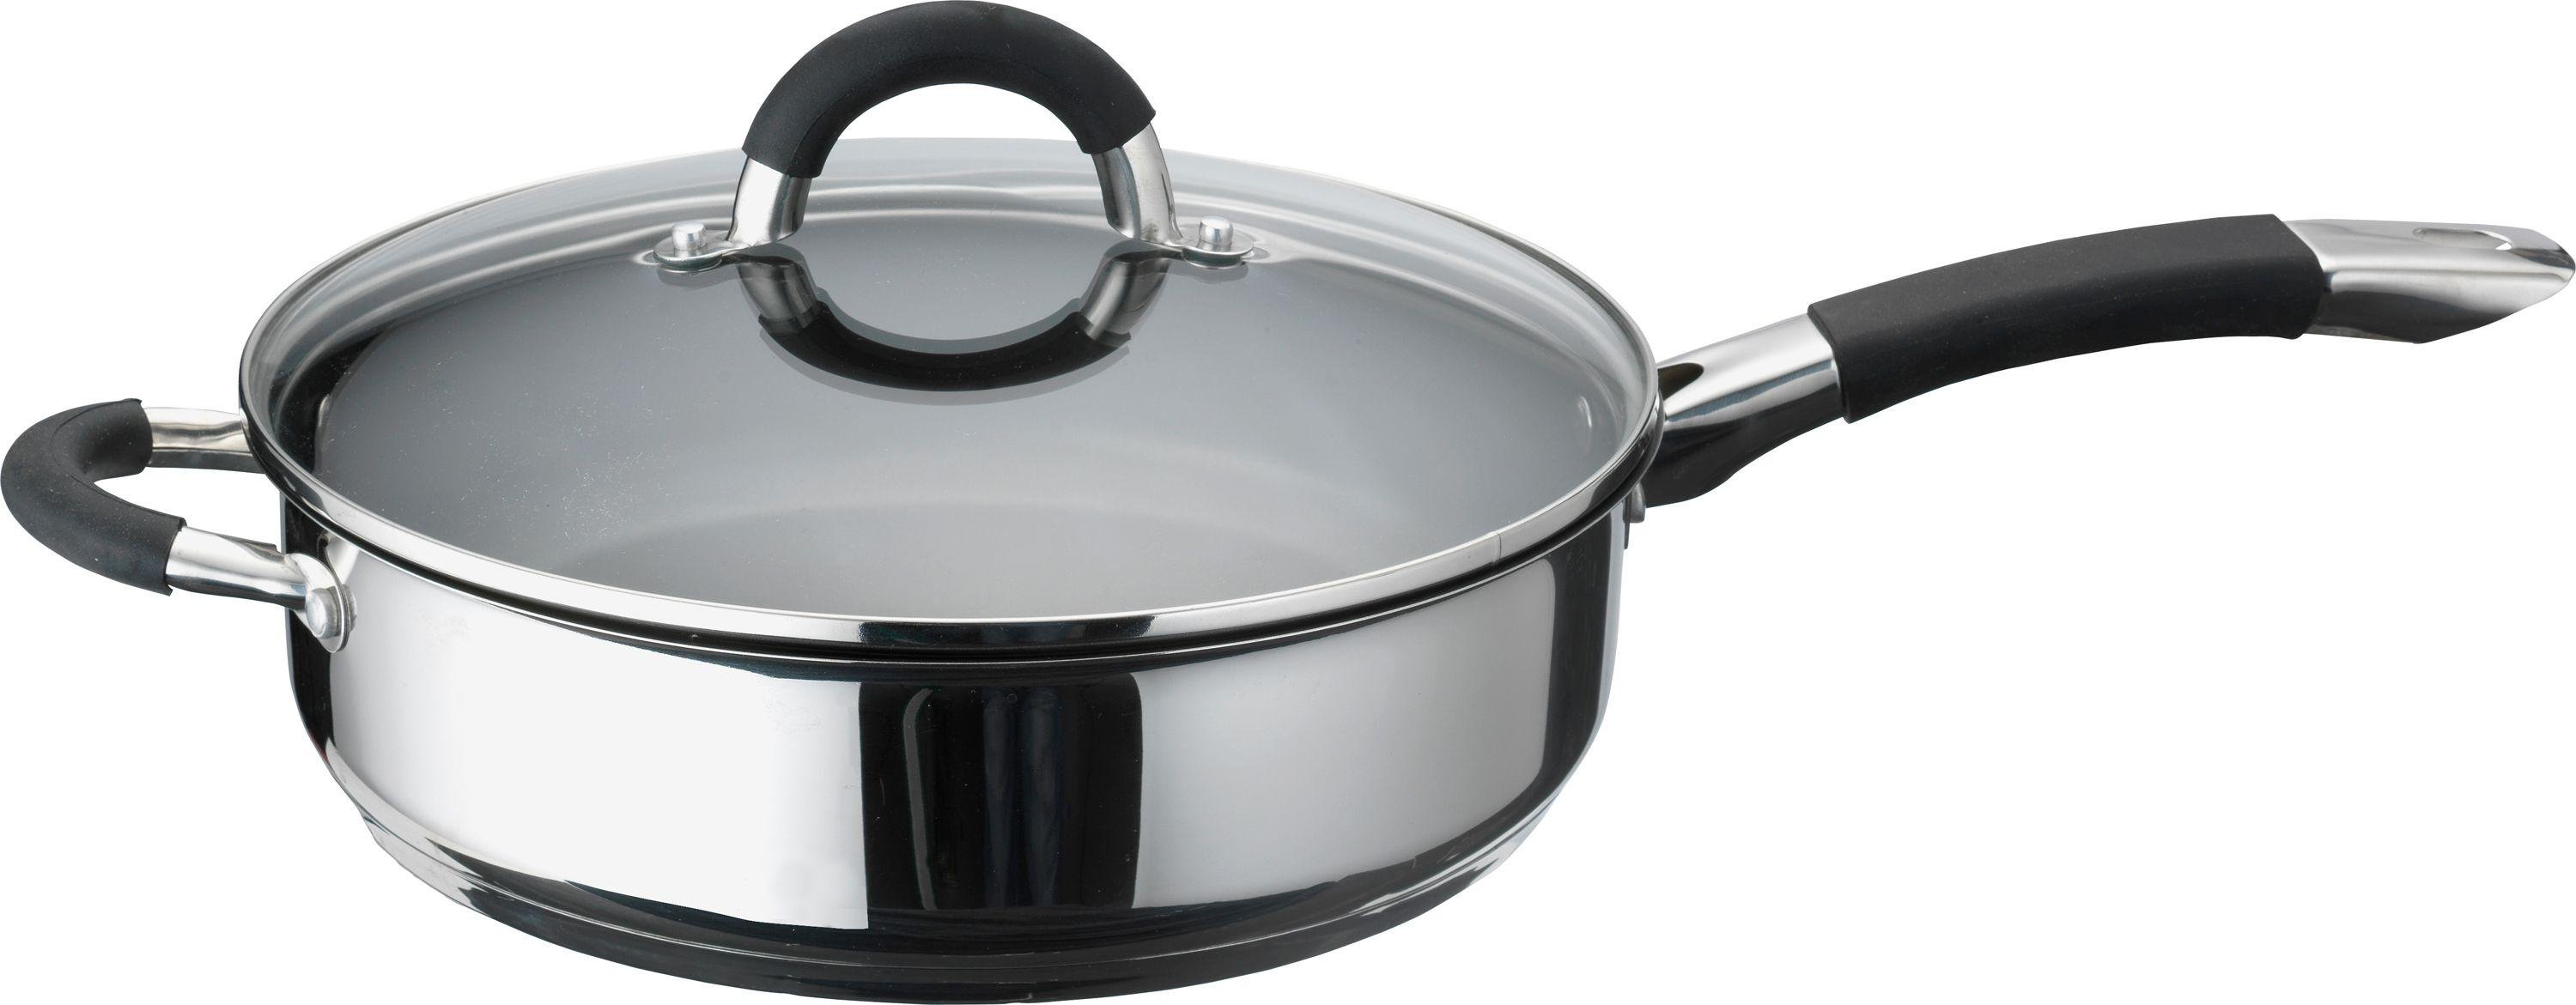 ready-steady-cook-26cm-stainless-steel-saute-pan